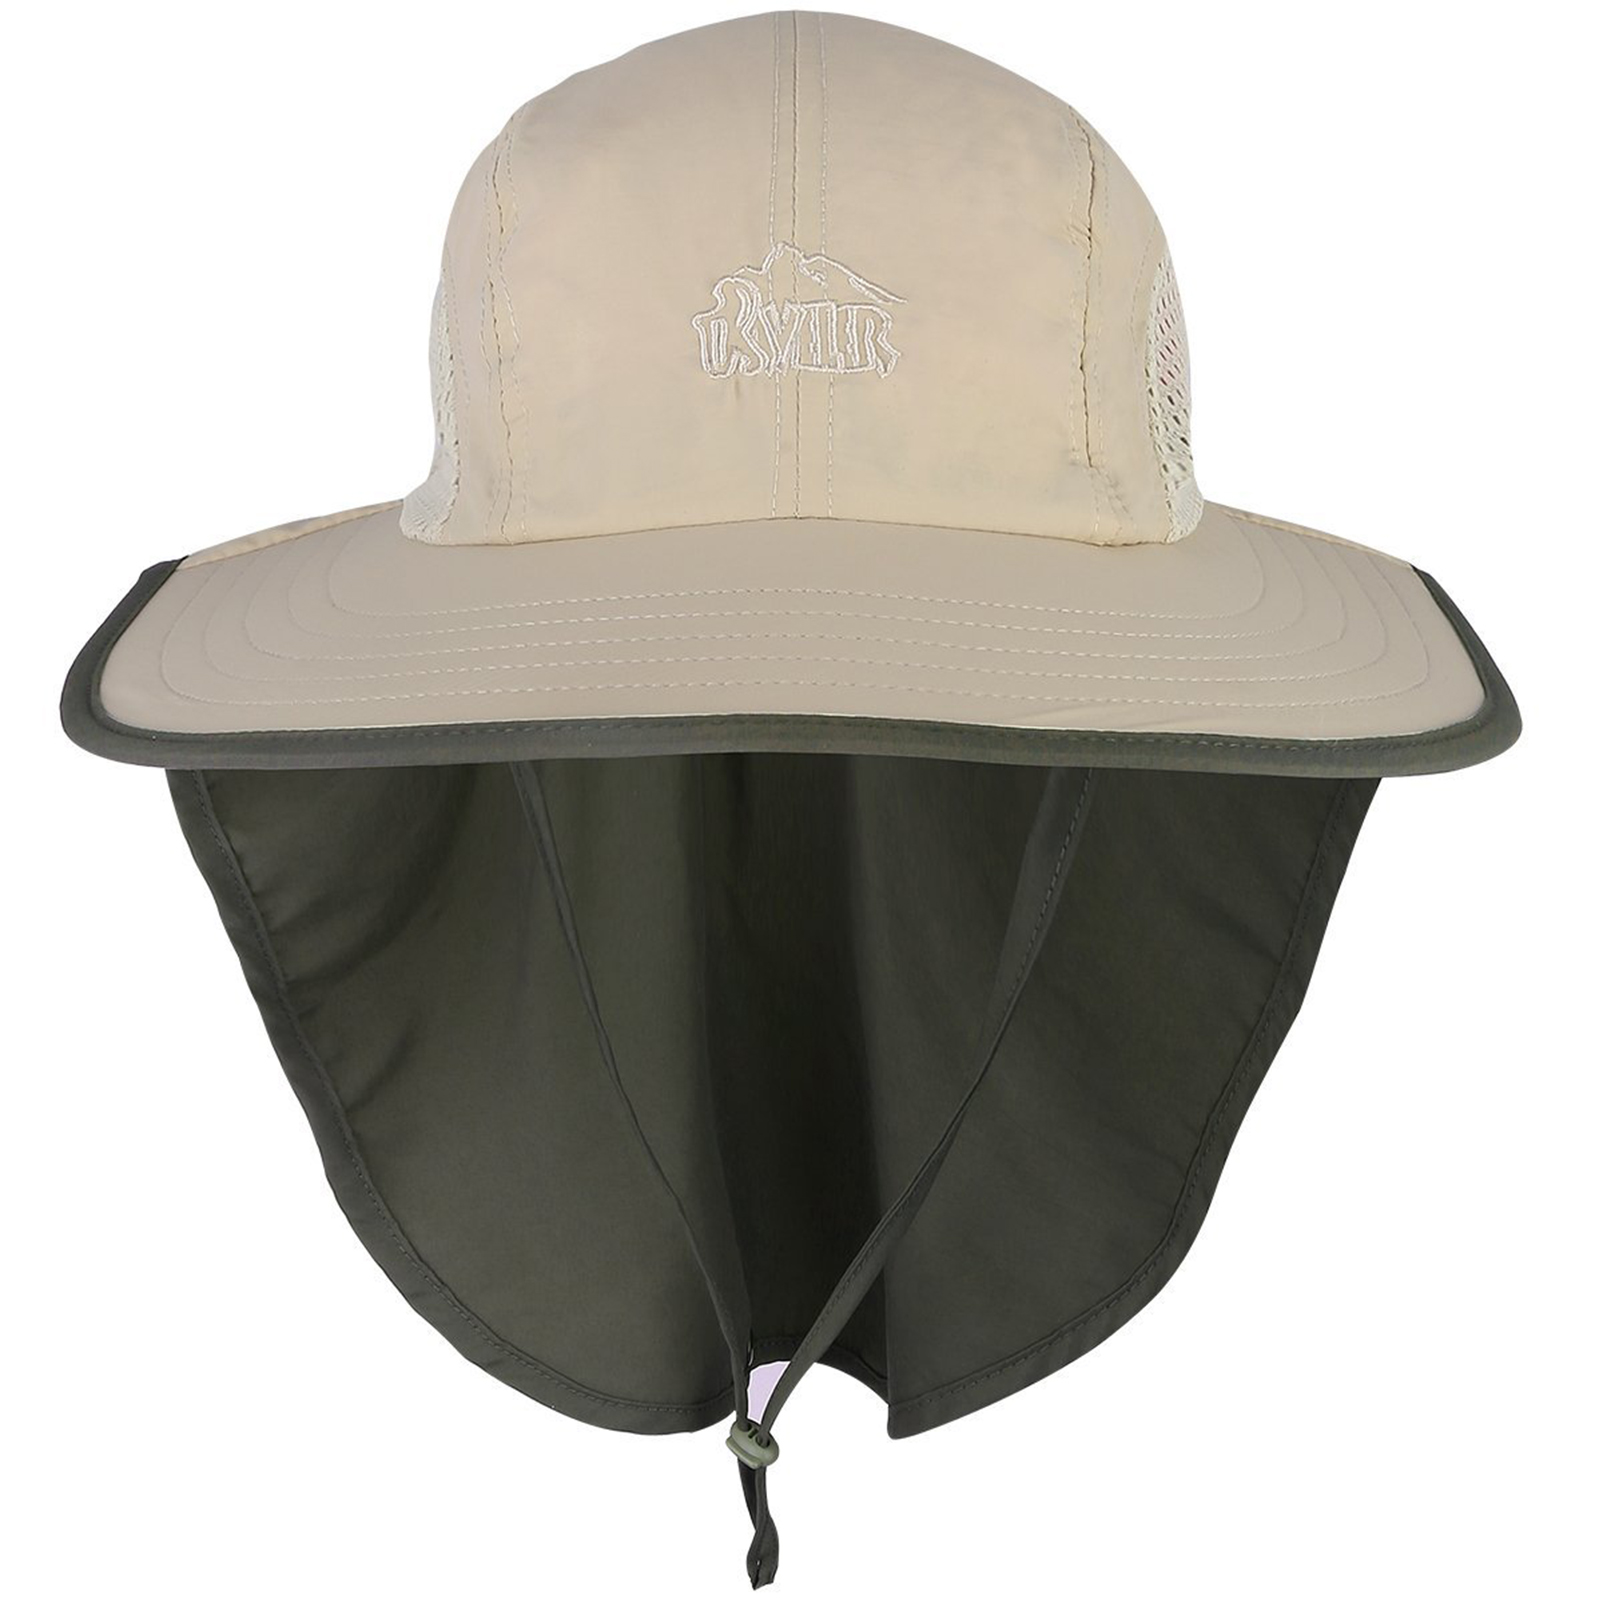 c8bbac87fc0a9 G4Free Outdoor Sun Protection Fishing Cap with Neck Flap Packable Wide Brim  Anti-UV Sun Hat UPF for Travel Fishing Camping Hat